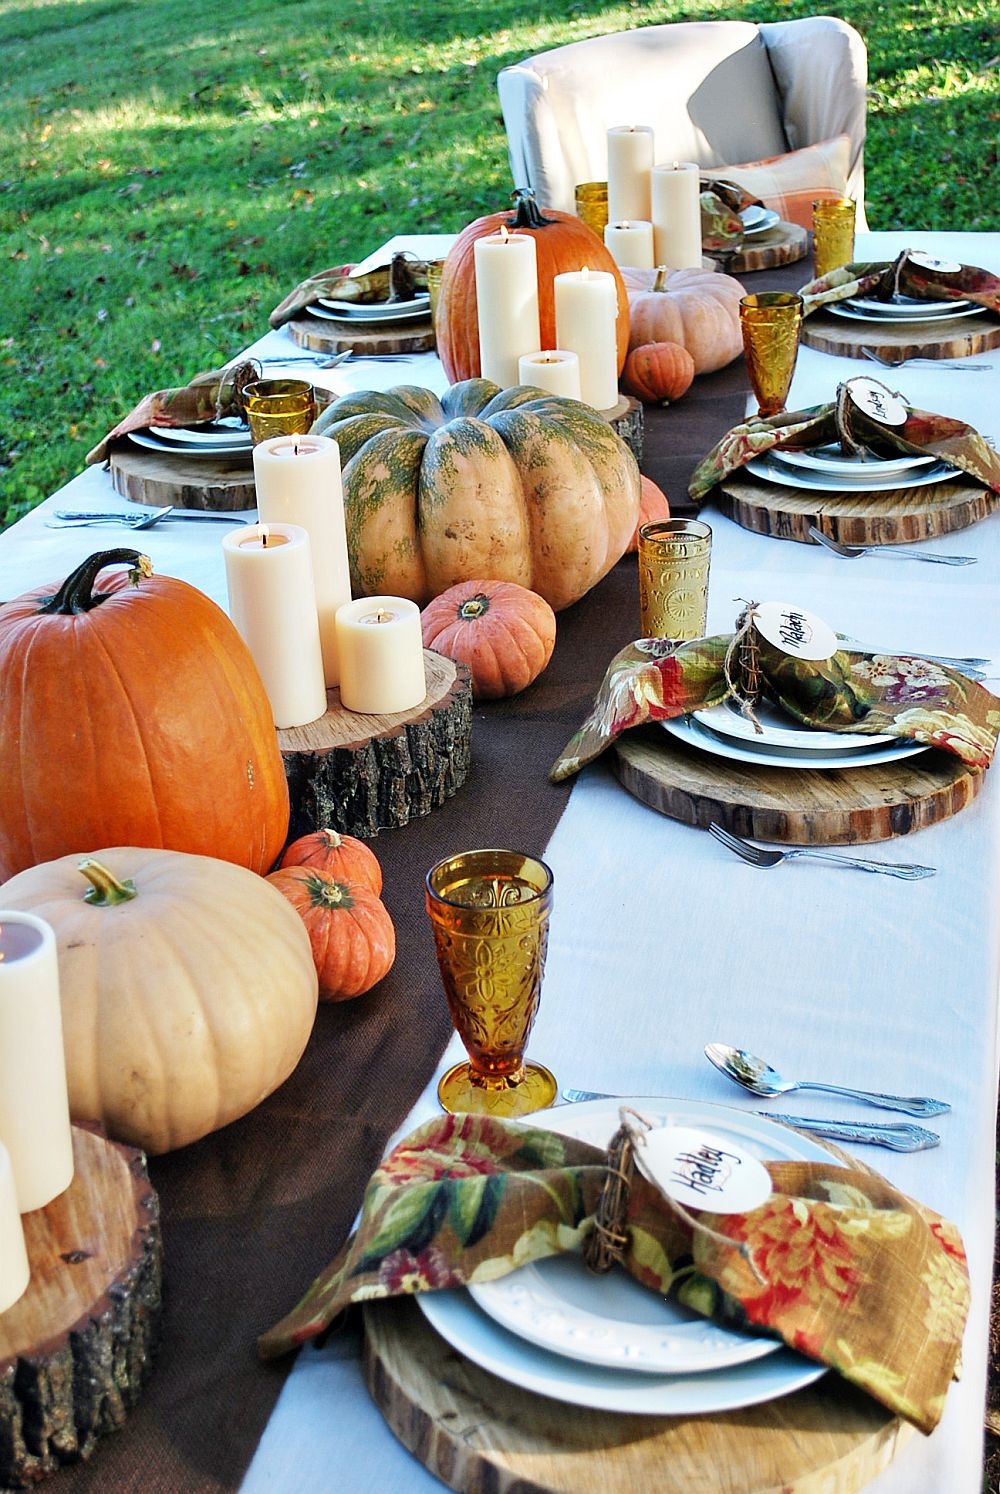 Rustic Thanksgiving table idea with an overload of pumpkins